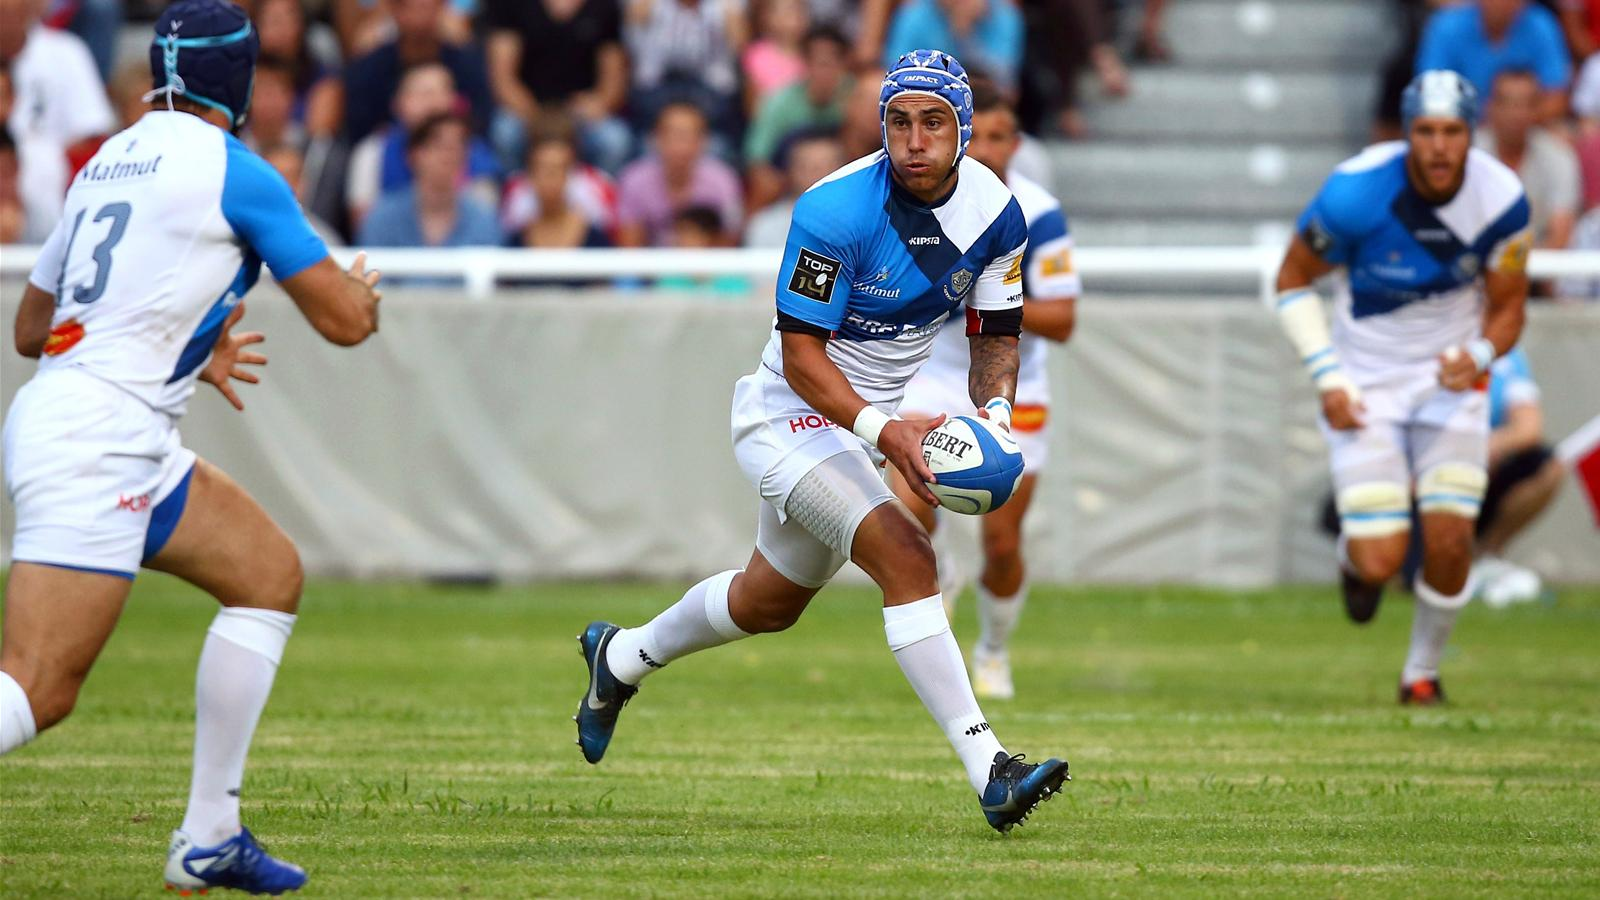 Match Castres Olympique vs Grenoble Rugby en direct streaming live